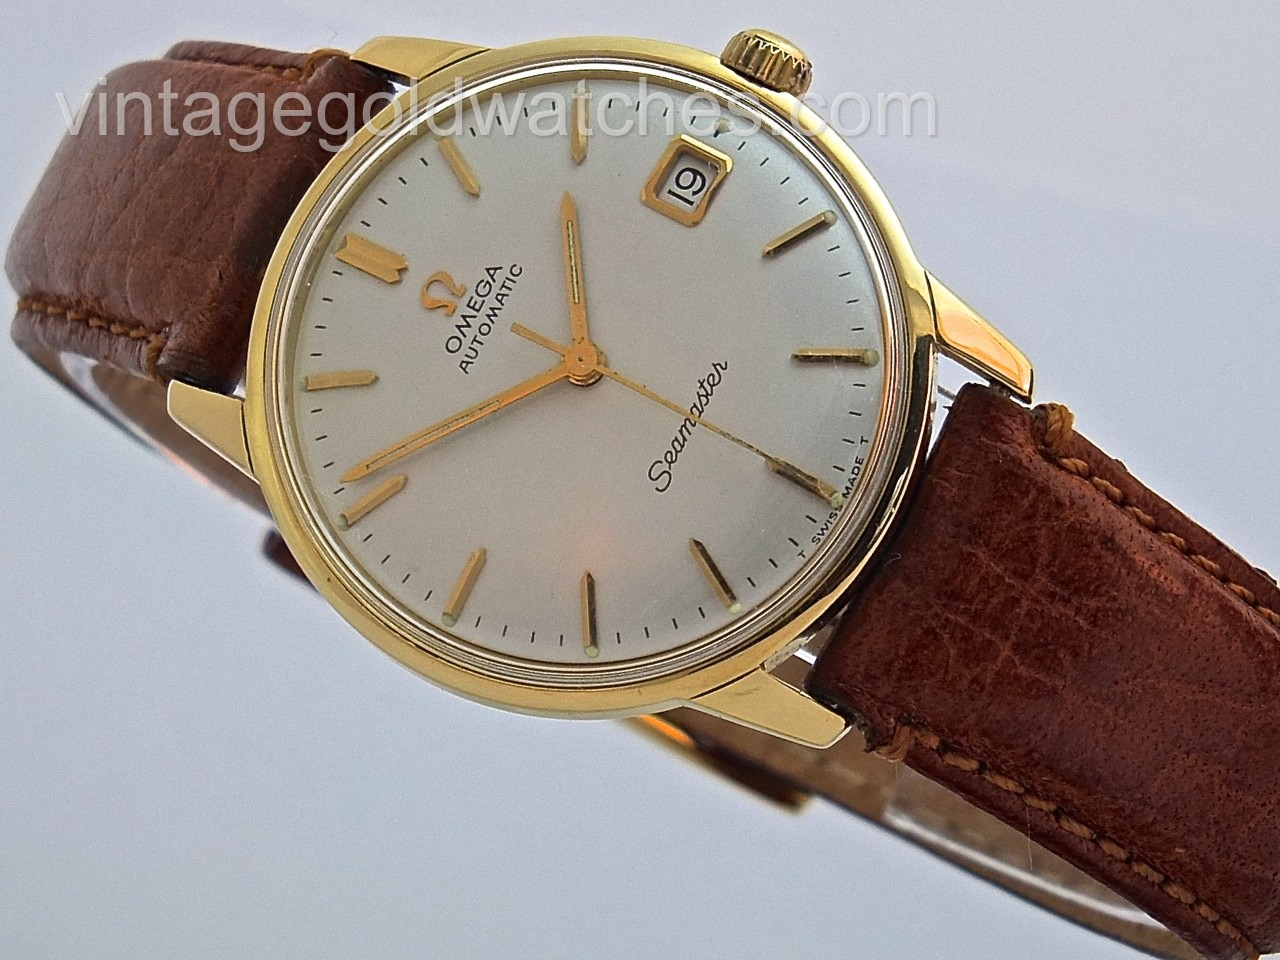 Omega seamaster 18k 1962 plus box sorry now sold 15th nov 39 13 vintage gold watches for Vintage gold watch